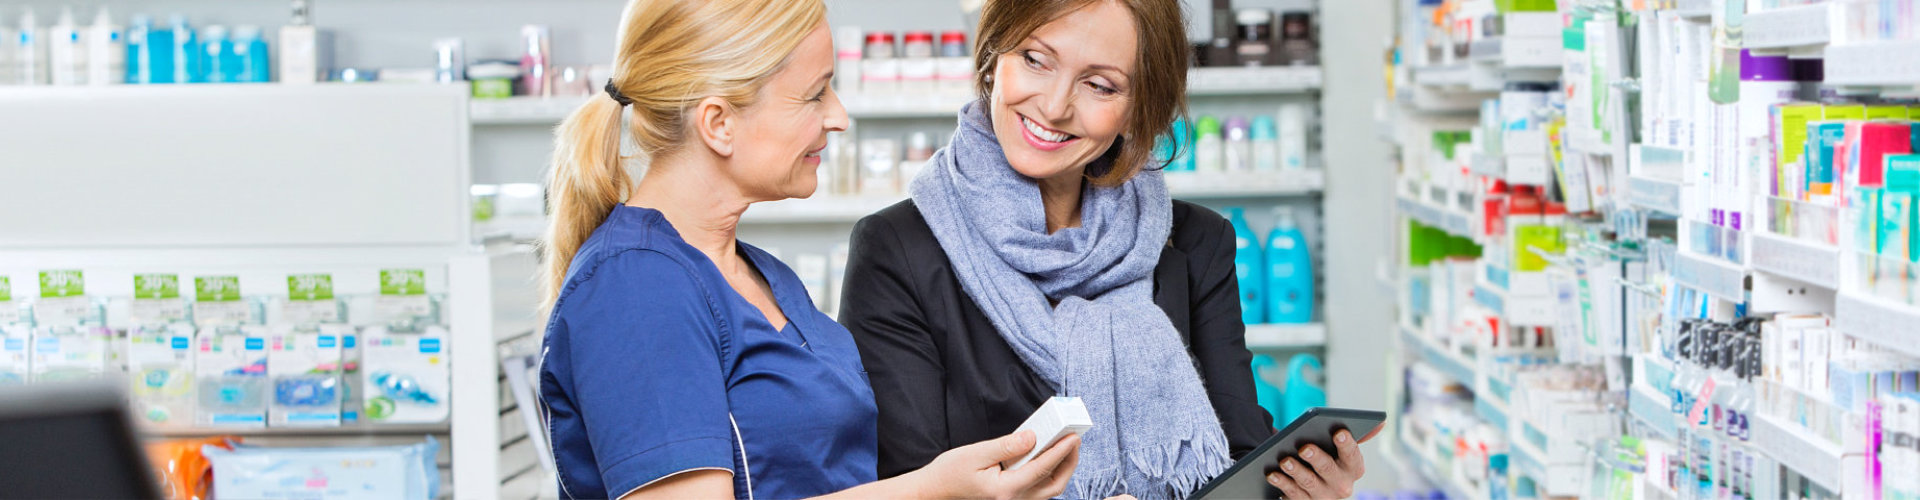 female pharmacist in blue uniform and female customer looking at each other